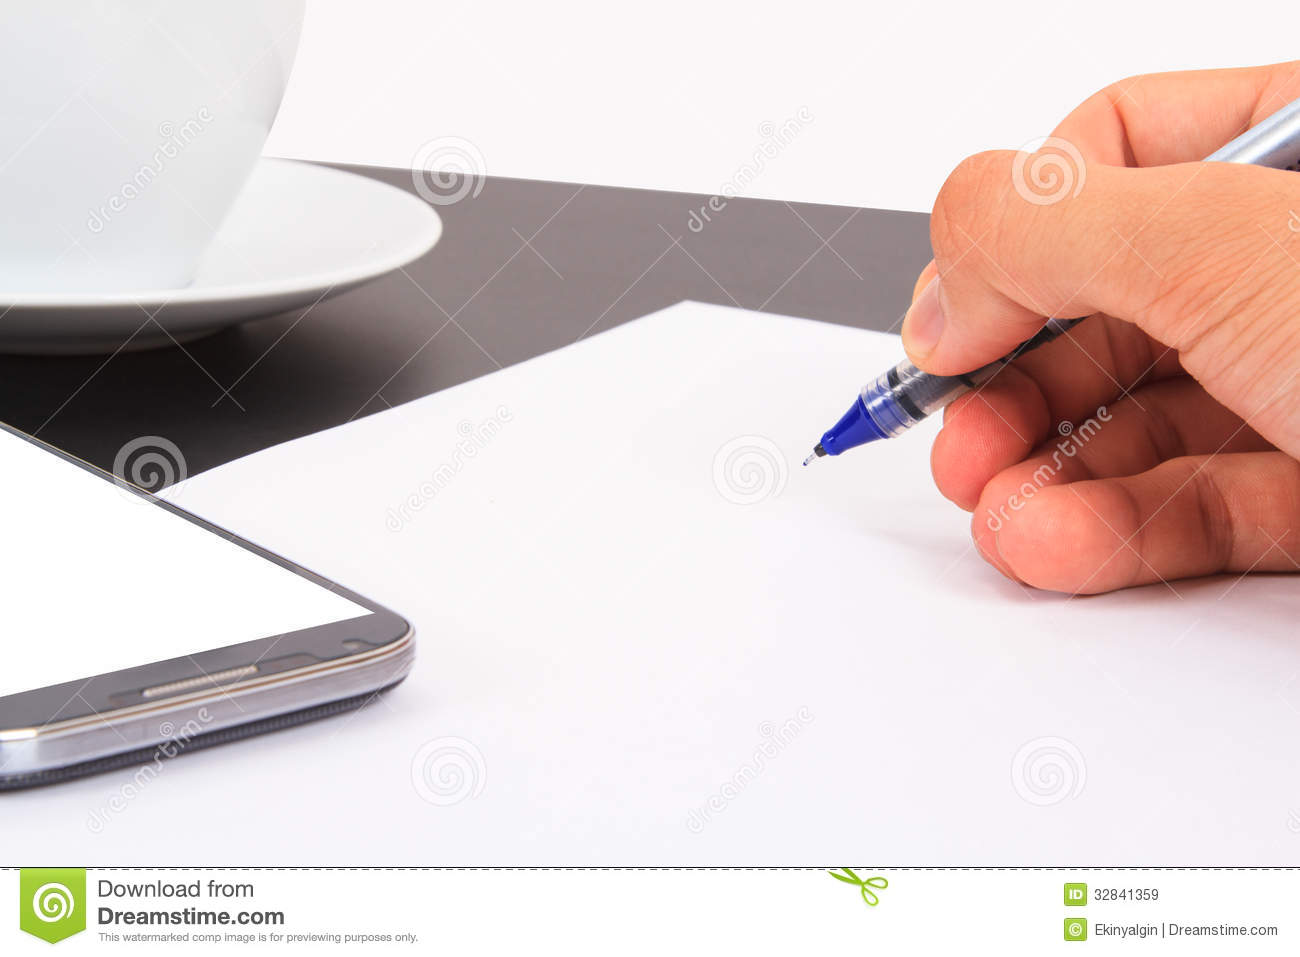 write essays eastside cup About panda essay football world cup october 29, 2018 expository essay means qualities dissertation ideas media english masters discussion in research paper zei illusion essay xml elon musk essay game of thrones my past essay type mind mapping for essay xls a photograph essay dream school (lessons for life essay grade 10) sport swimming essay writing the list of essay topic disadvantages.